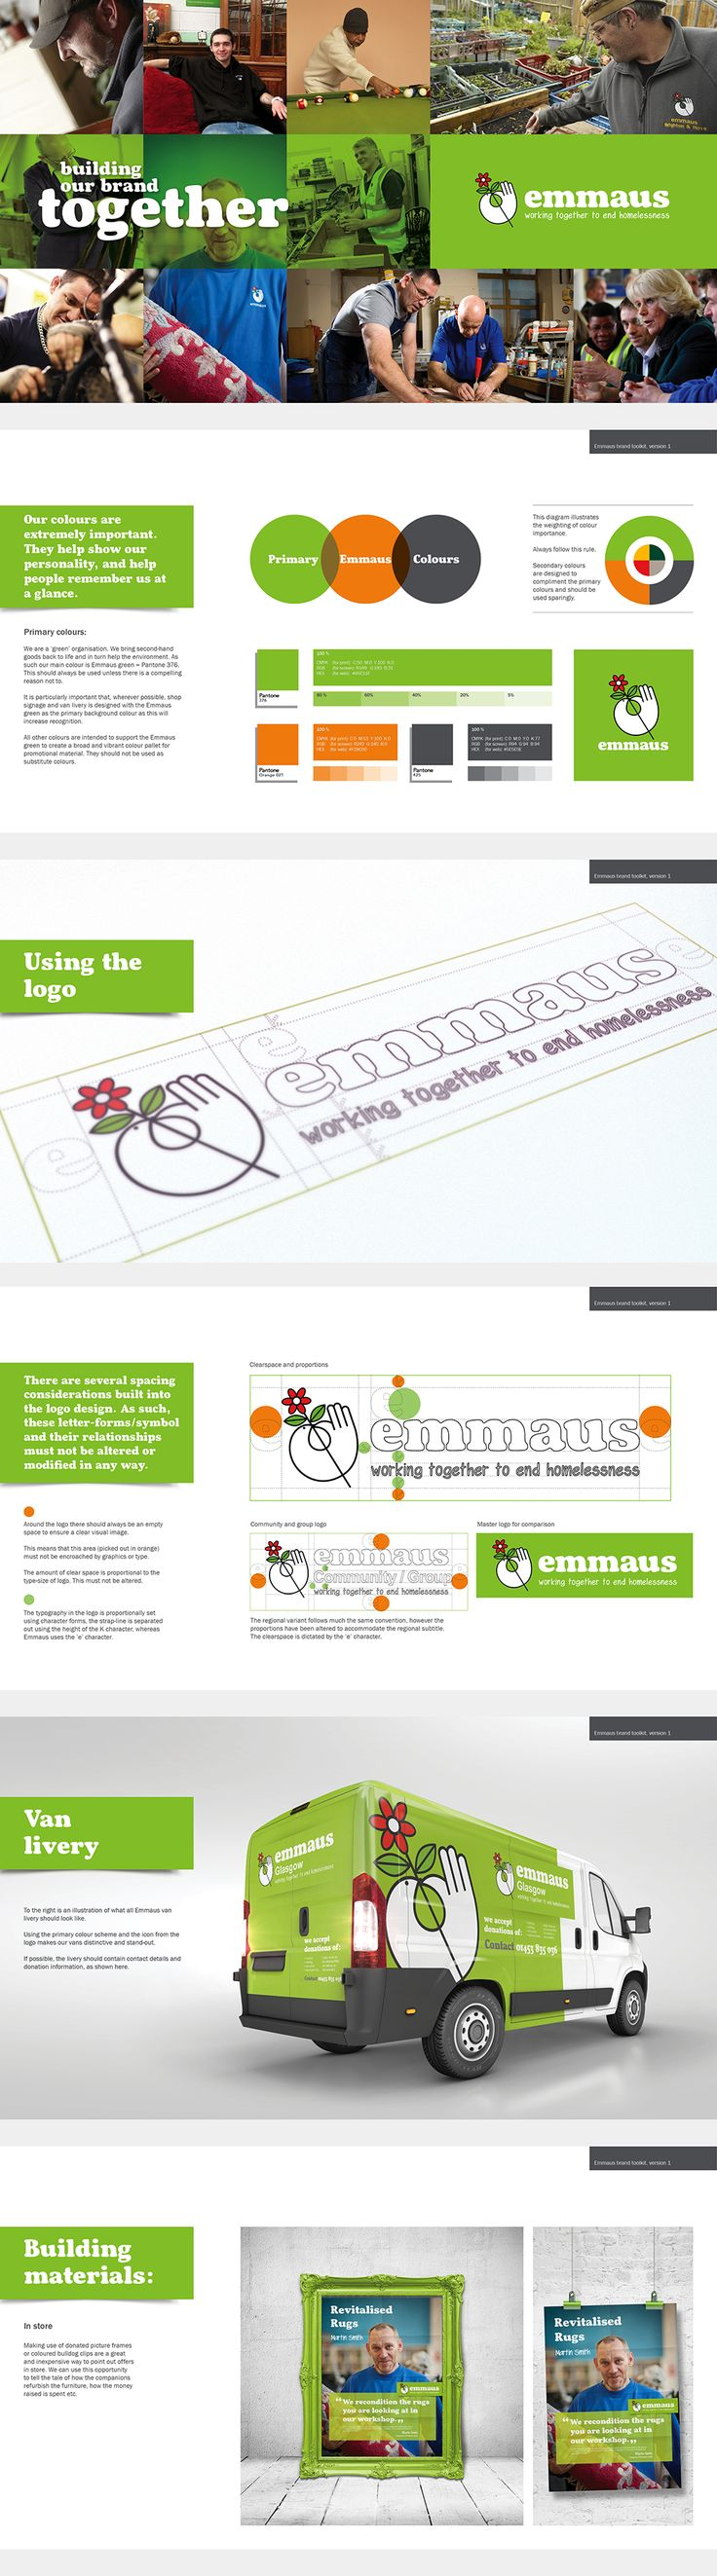 Brand guidelines for the homelessness charity Emmaus. Whilst Emmaus are a huge international charity, they currently have little profile and brand recognition, this project is the first step to creating a cohesive and recognisable brand. Find an Emmaus near you! http://www.emmaus.org.uk